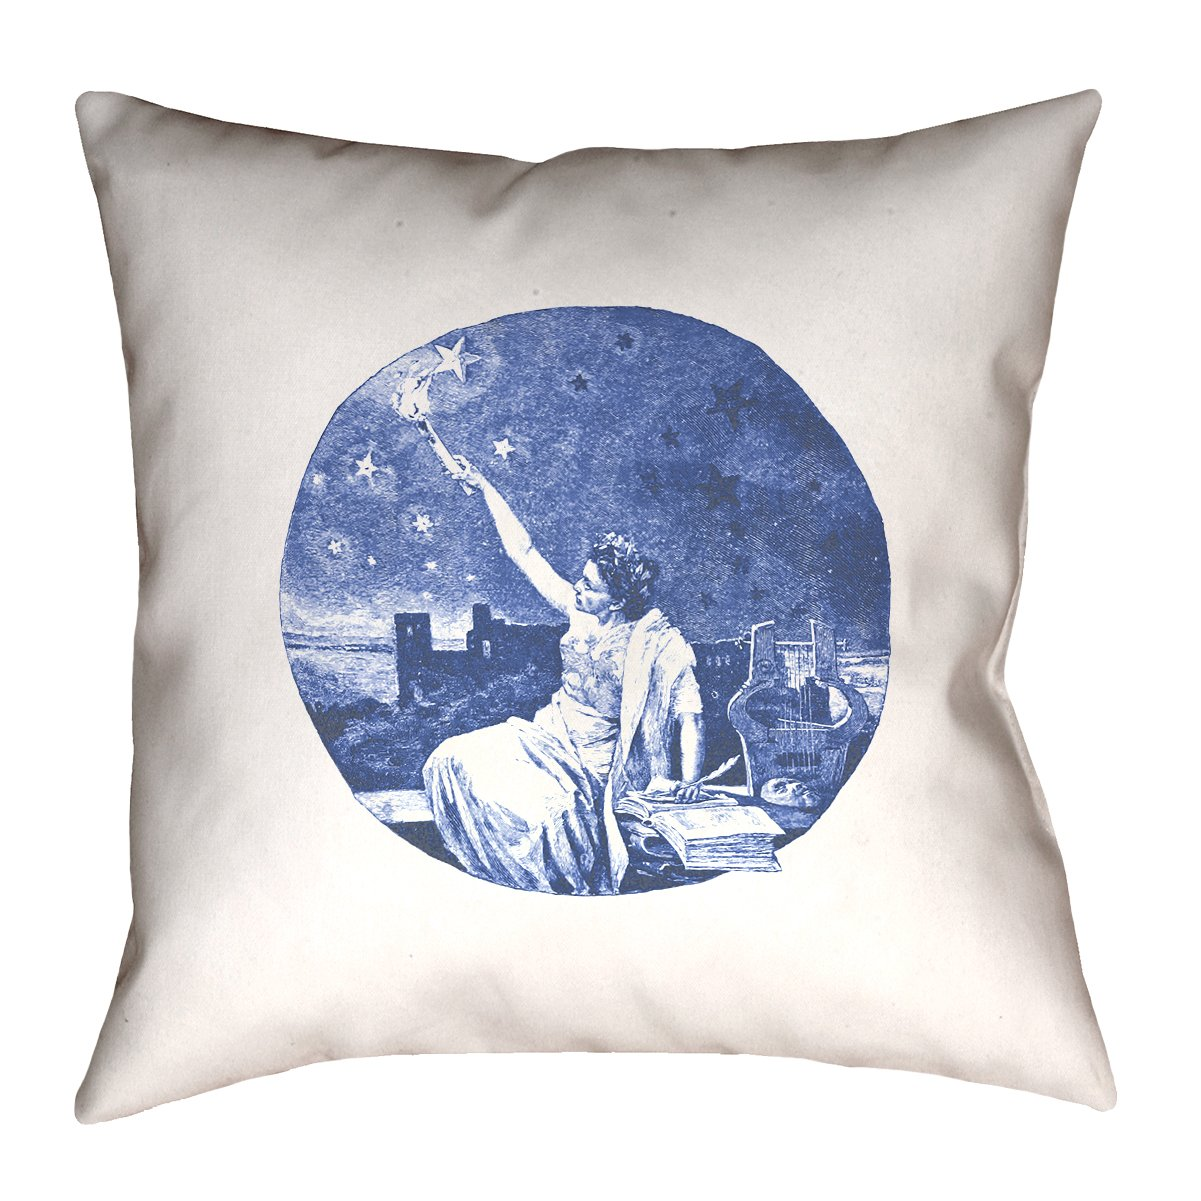 ArtVerse Katelyn Smith Blue Vintage Goddess 20 x 20 Pillow-Faux Linen Updated Fabric Double Sided Print with Concealed Zipper /& Insert